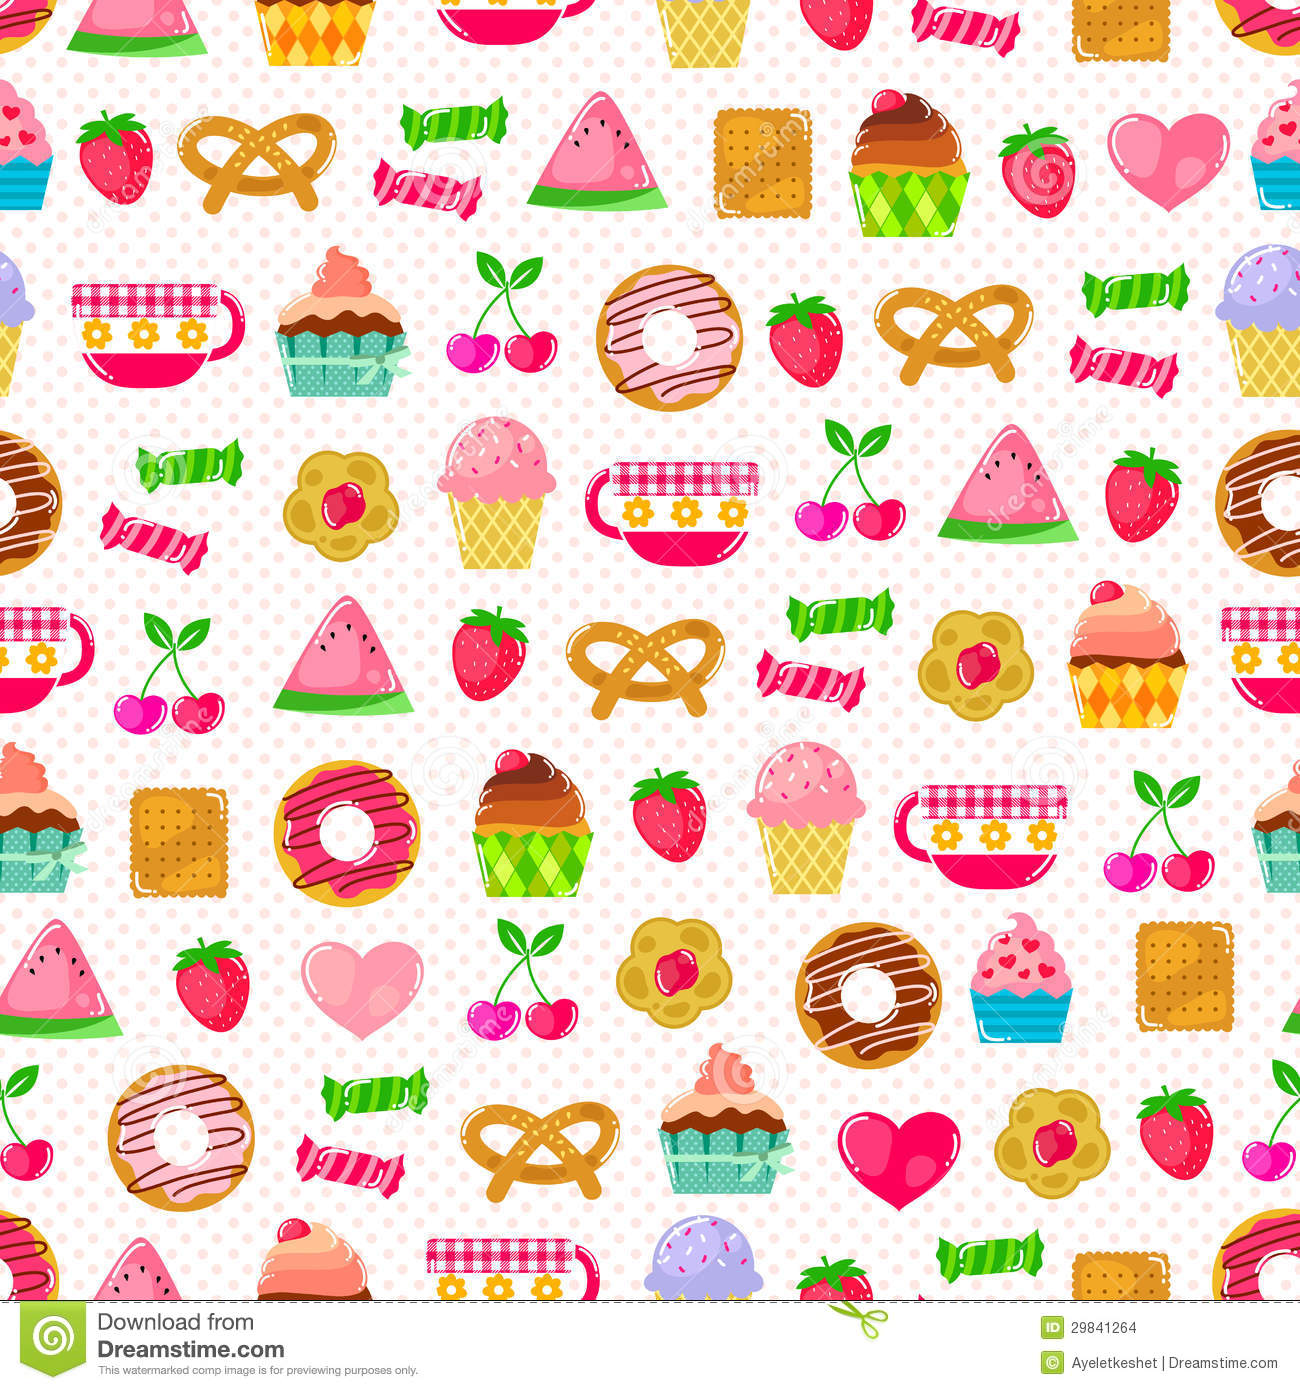 Girly Things Seamless Pattern Background Stock Photo - Image: 31734740